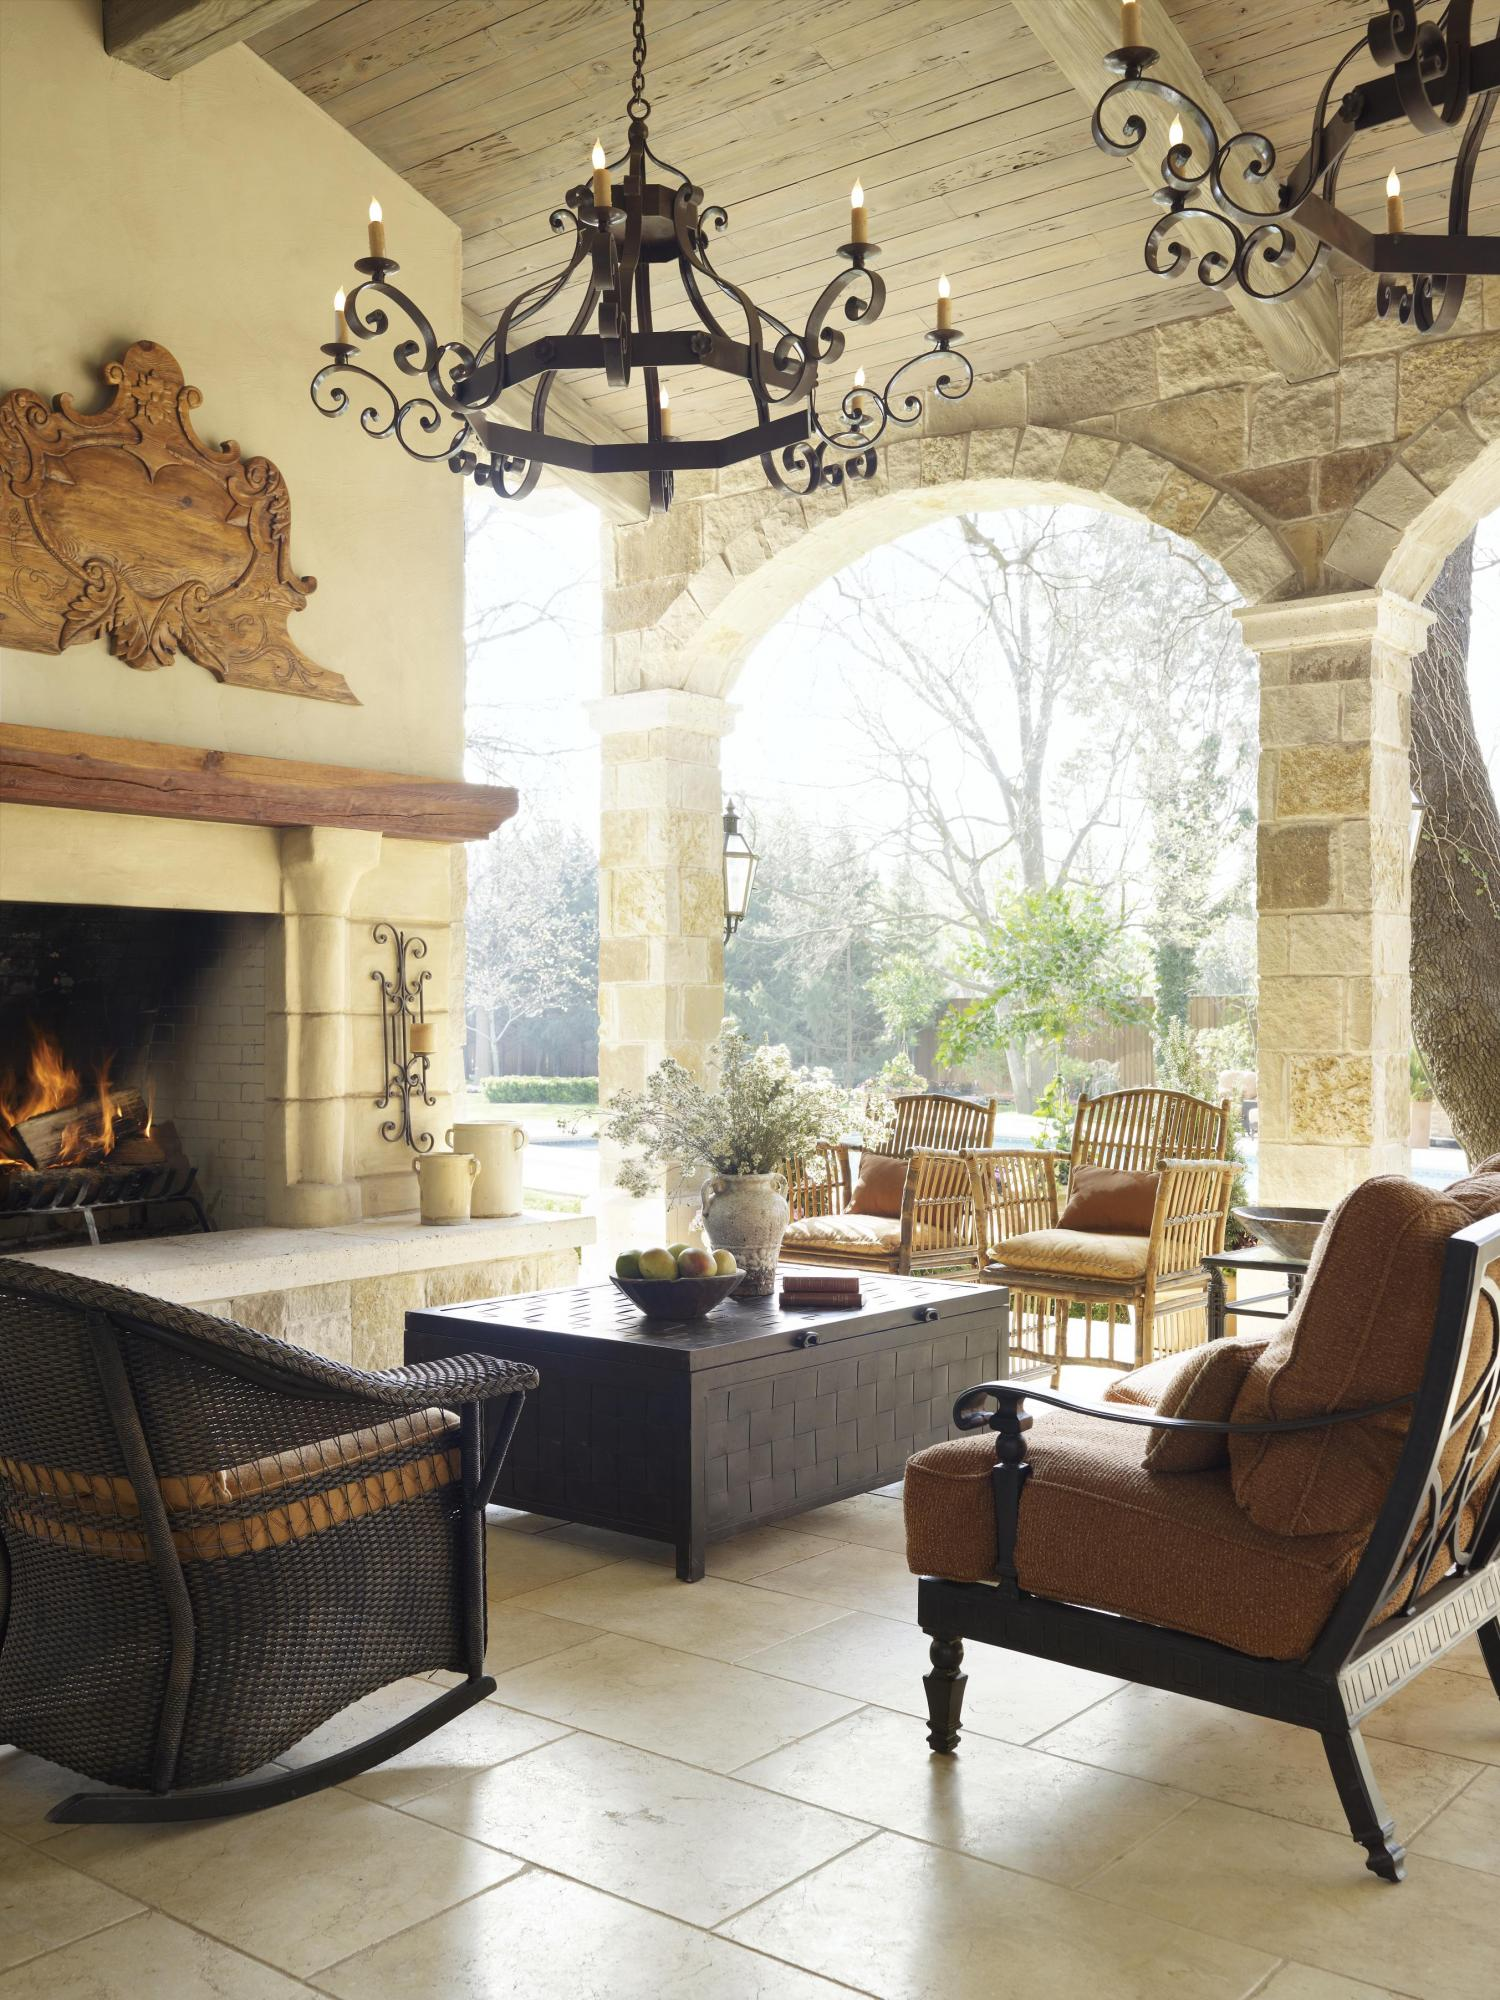 Alfresco Living Spaces with a Mediterranean Flair | Traditional Home